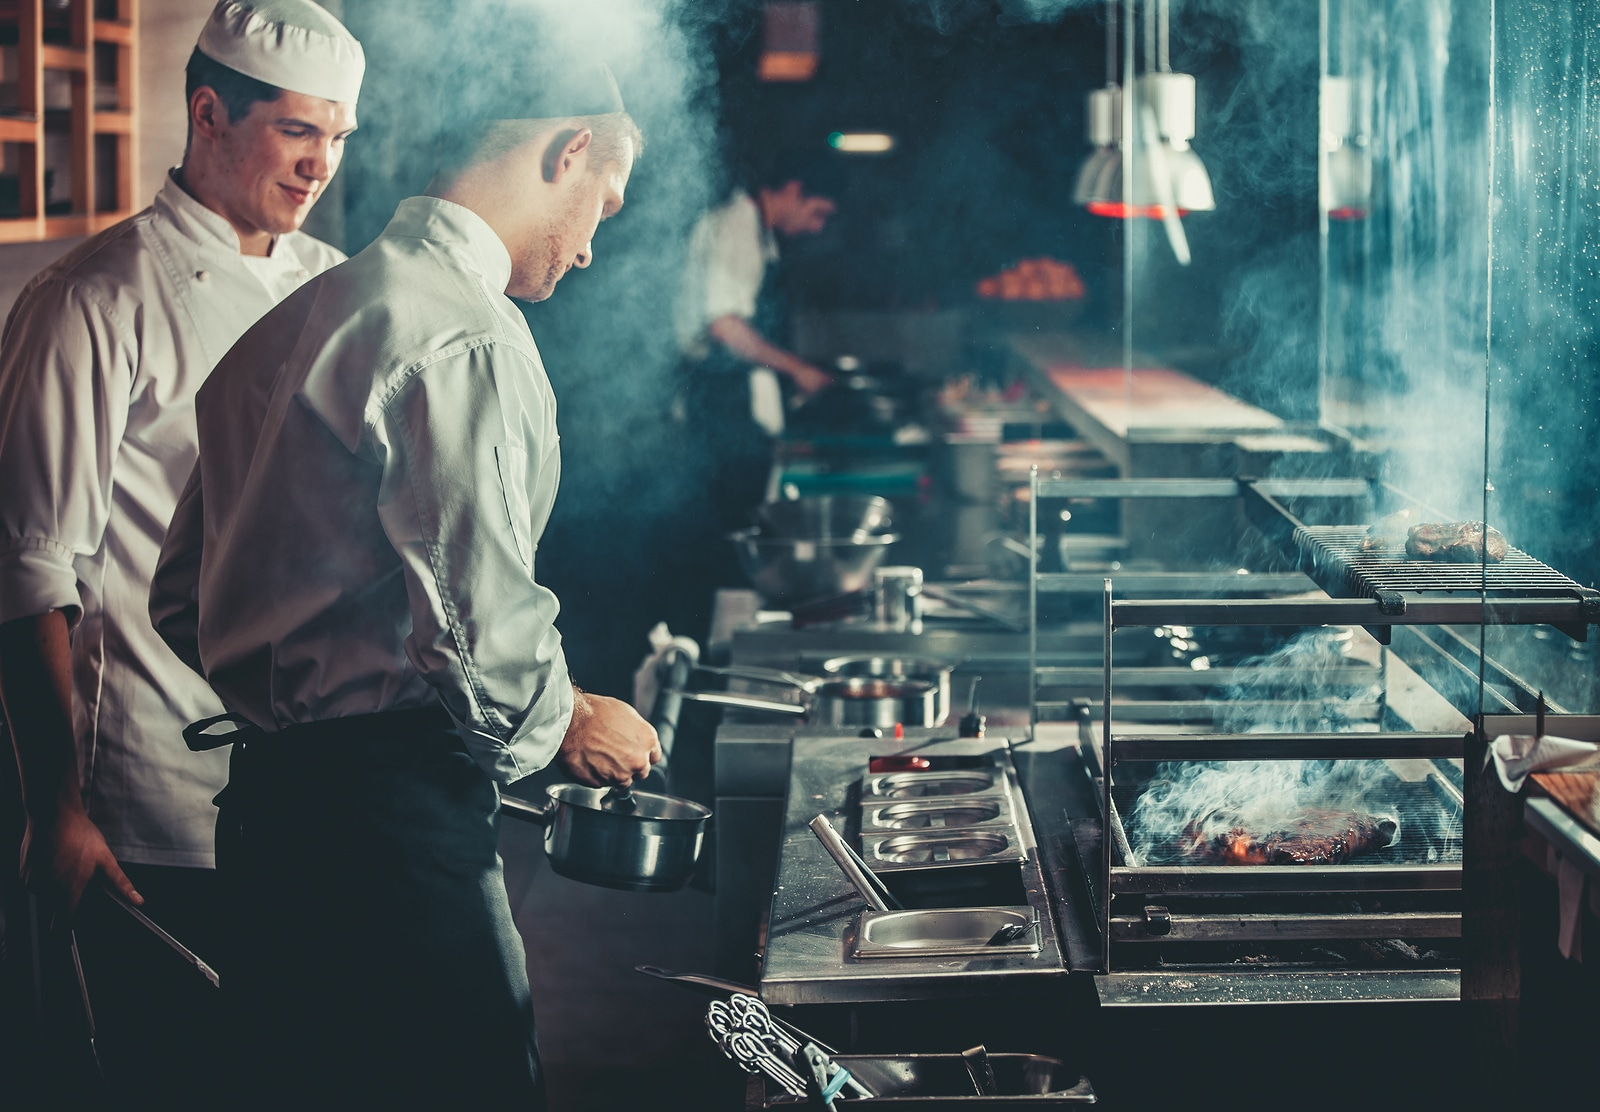 Cooking Terms All Restaurant Staff Should Know